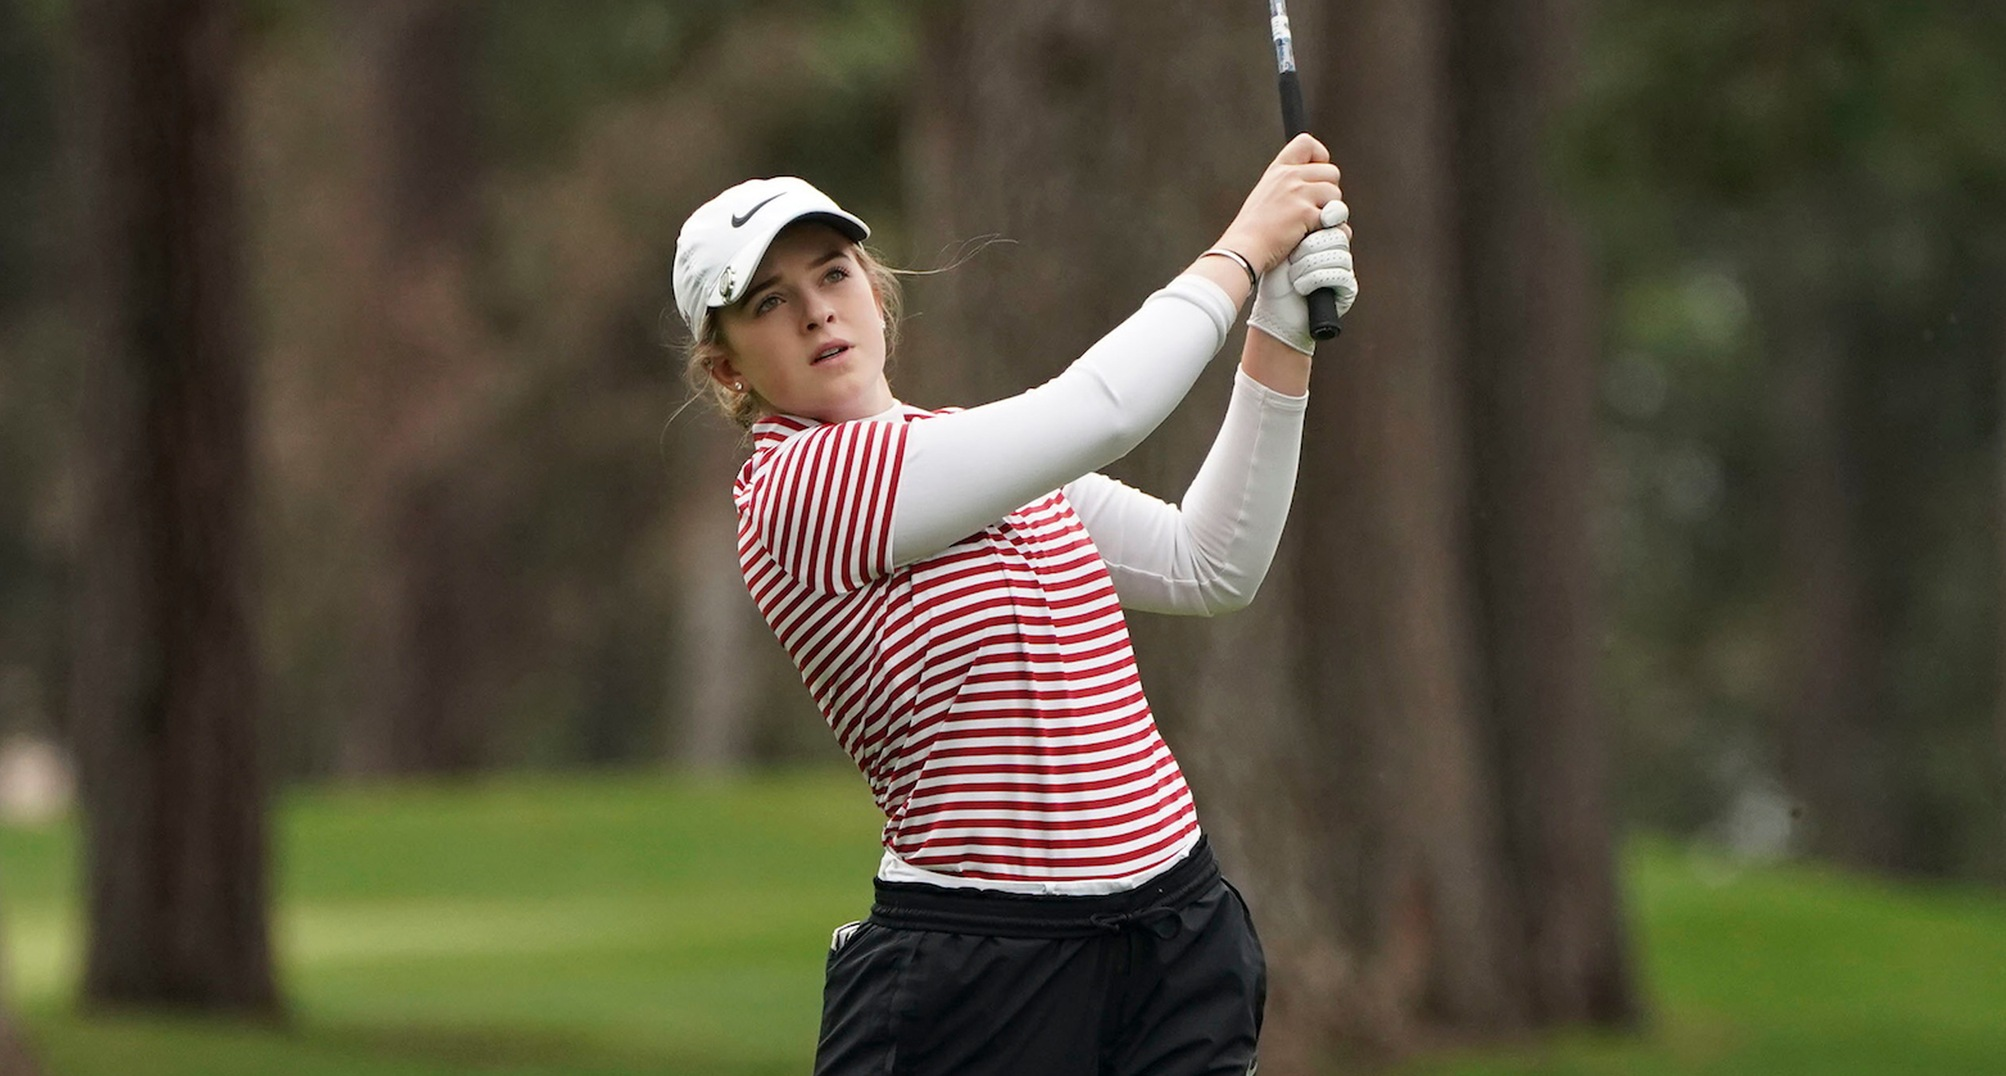 Sarah Busey (photo courtesy West Coast Conference)